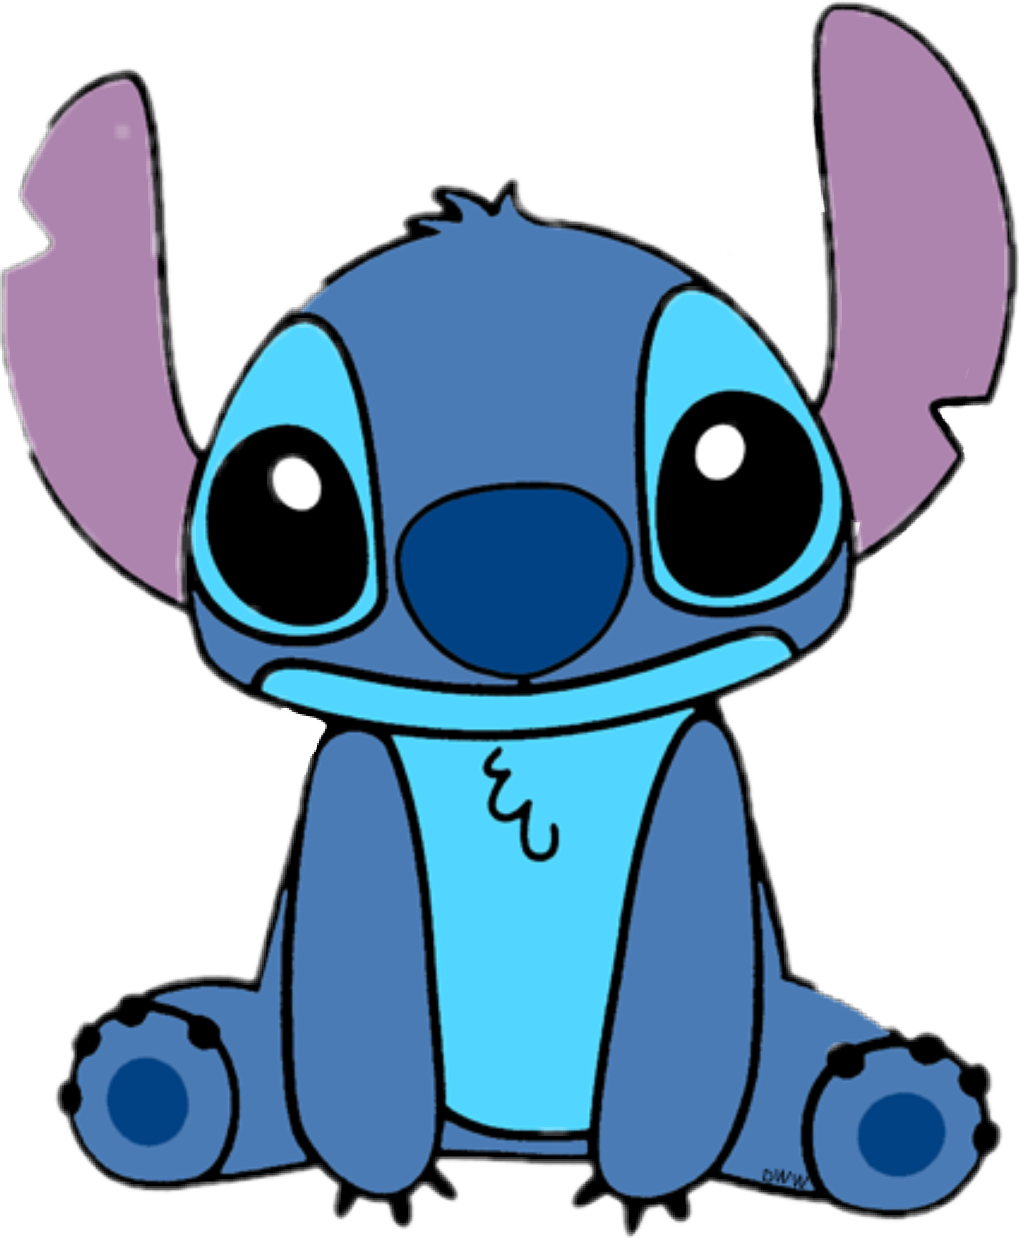 Sticker by camila santellan. Stitch clipart blue